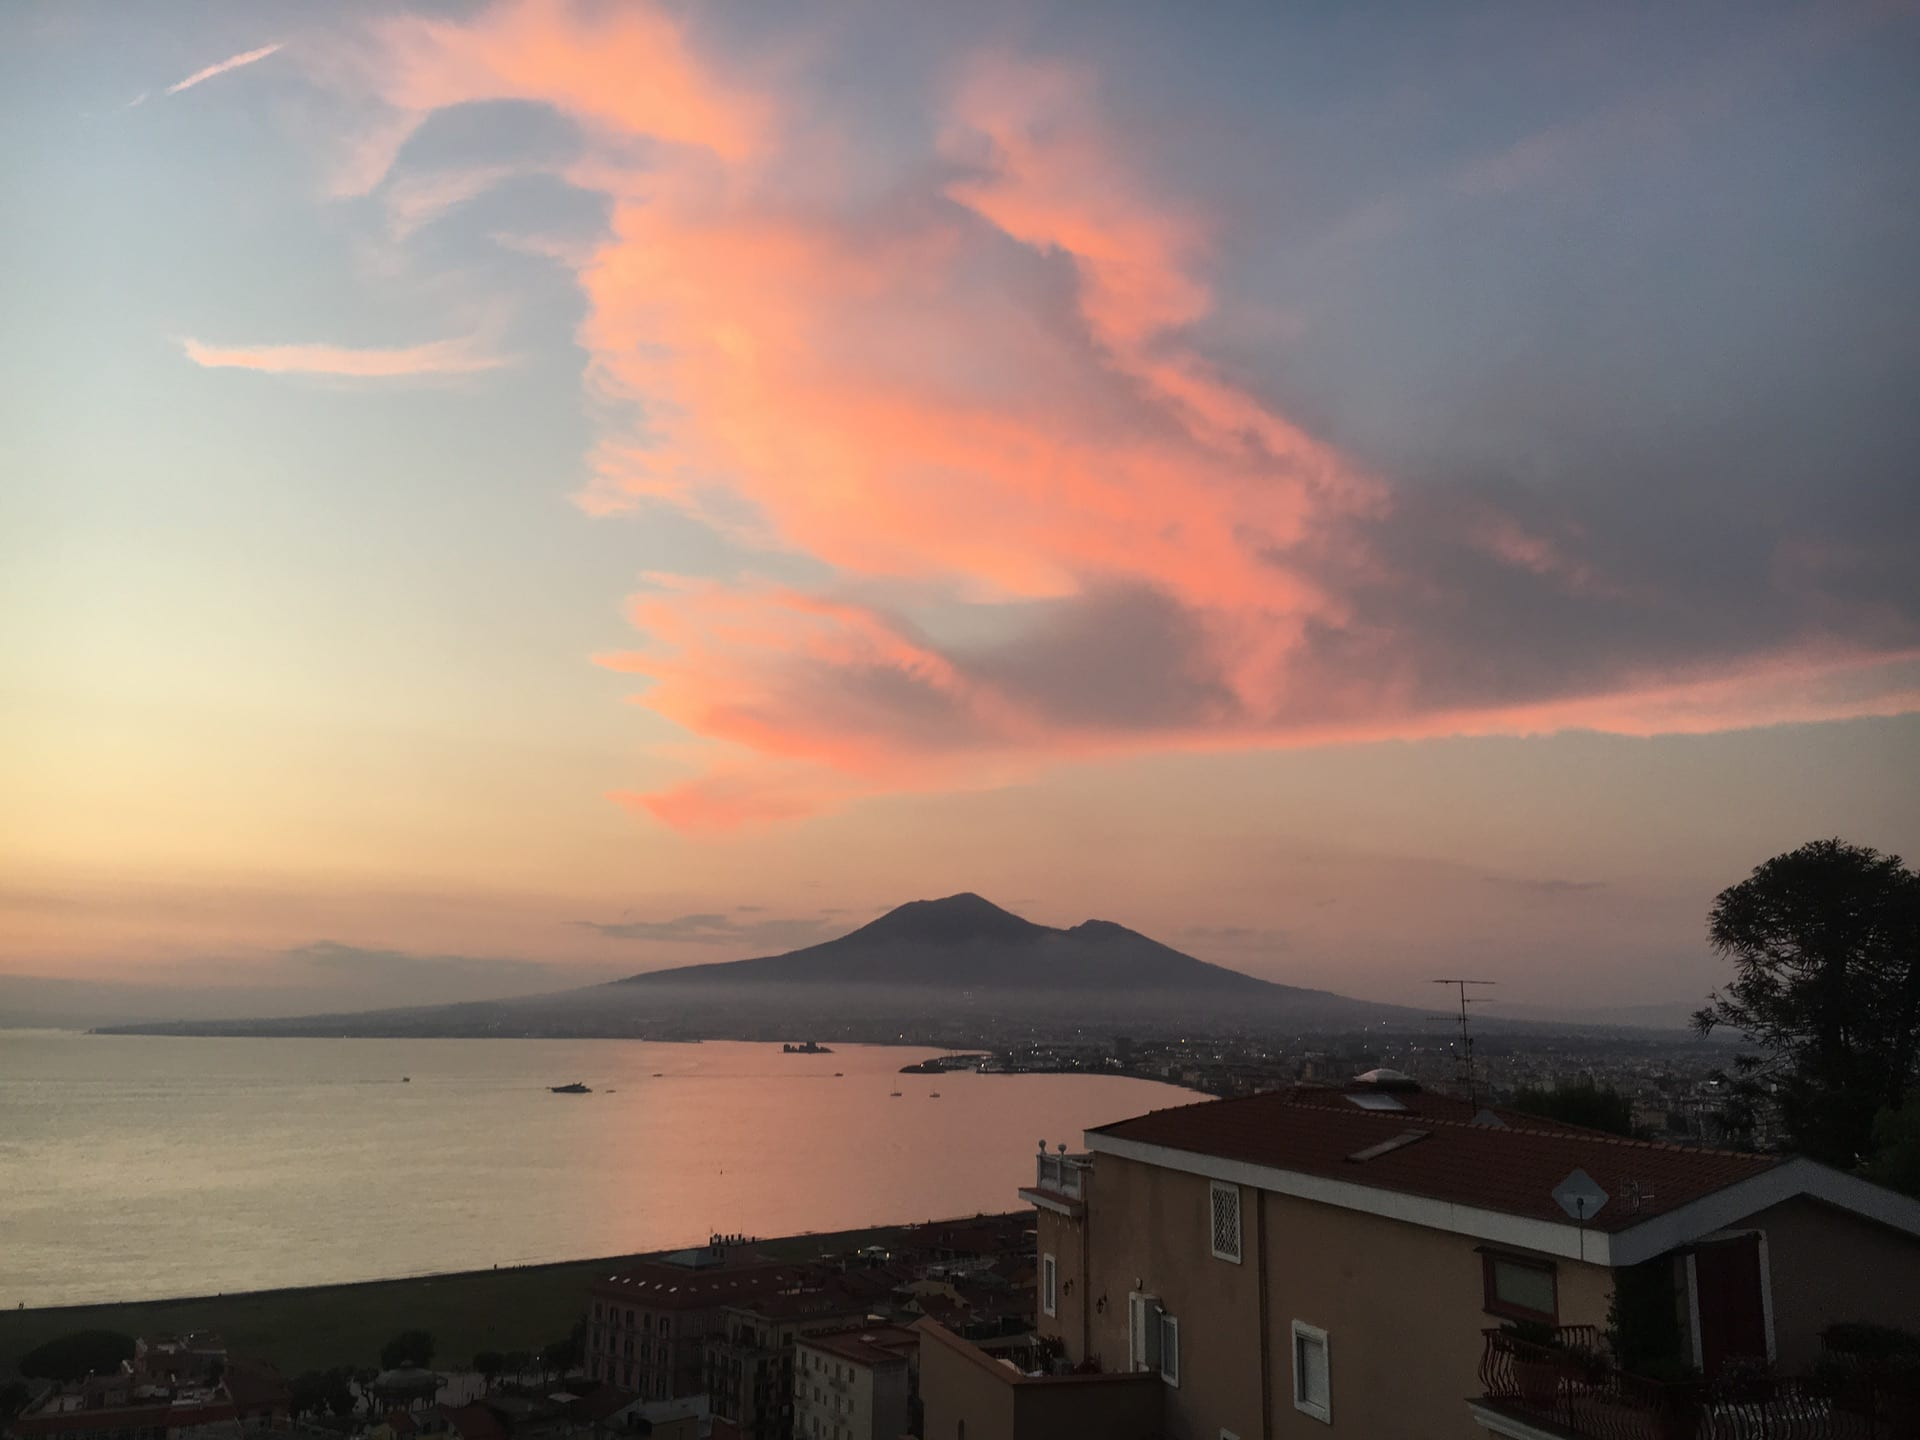 View of Mt. Vesuvius from Castellammare di Stabia, where undergraduates will be housed